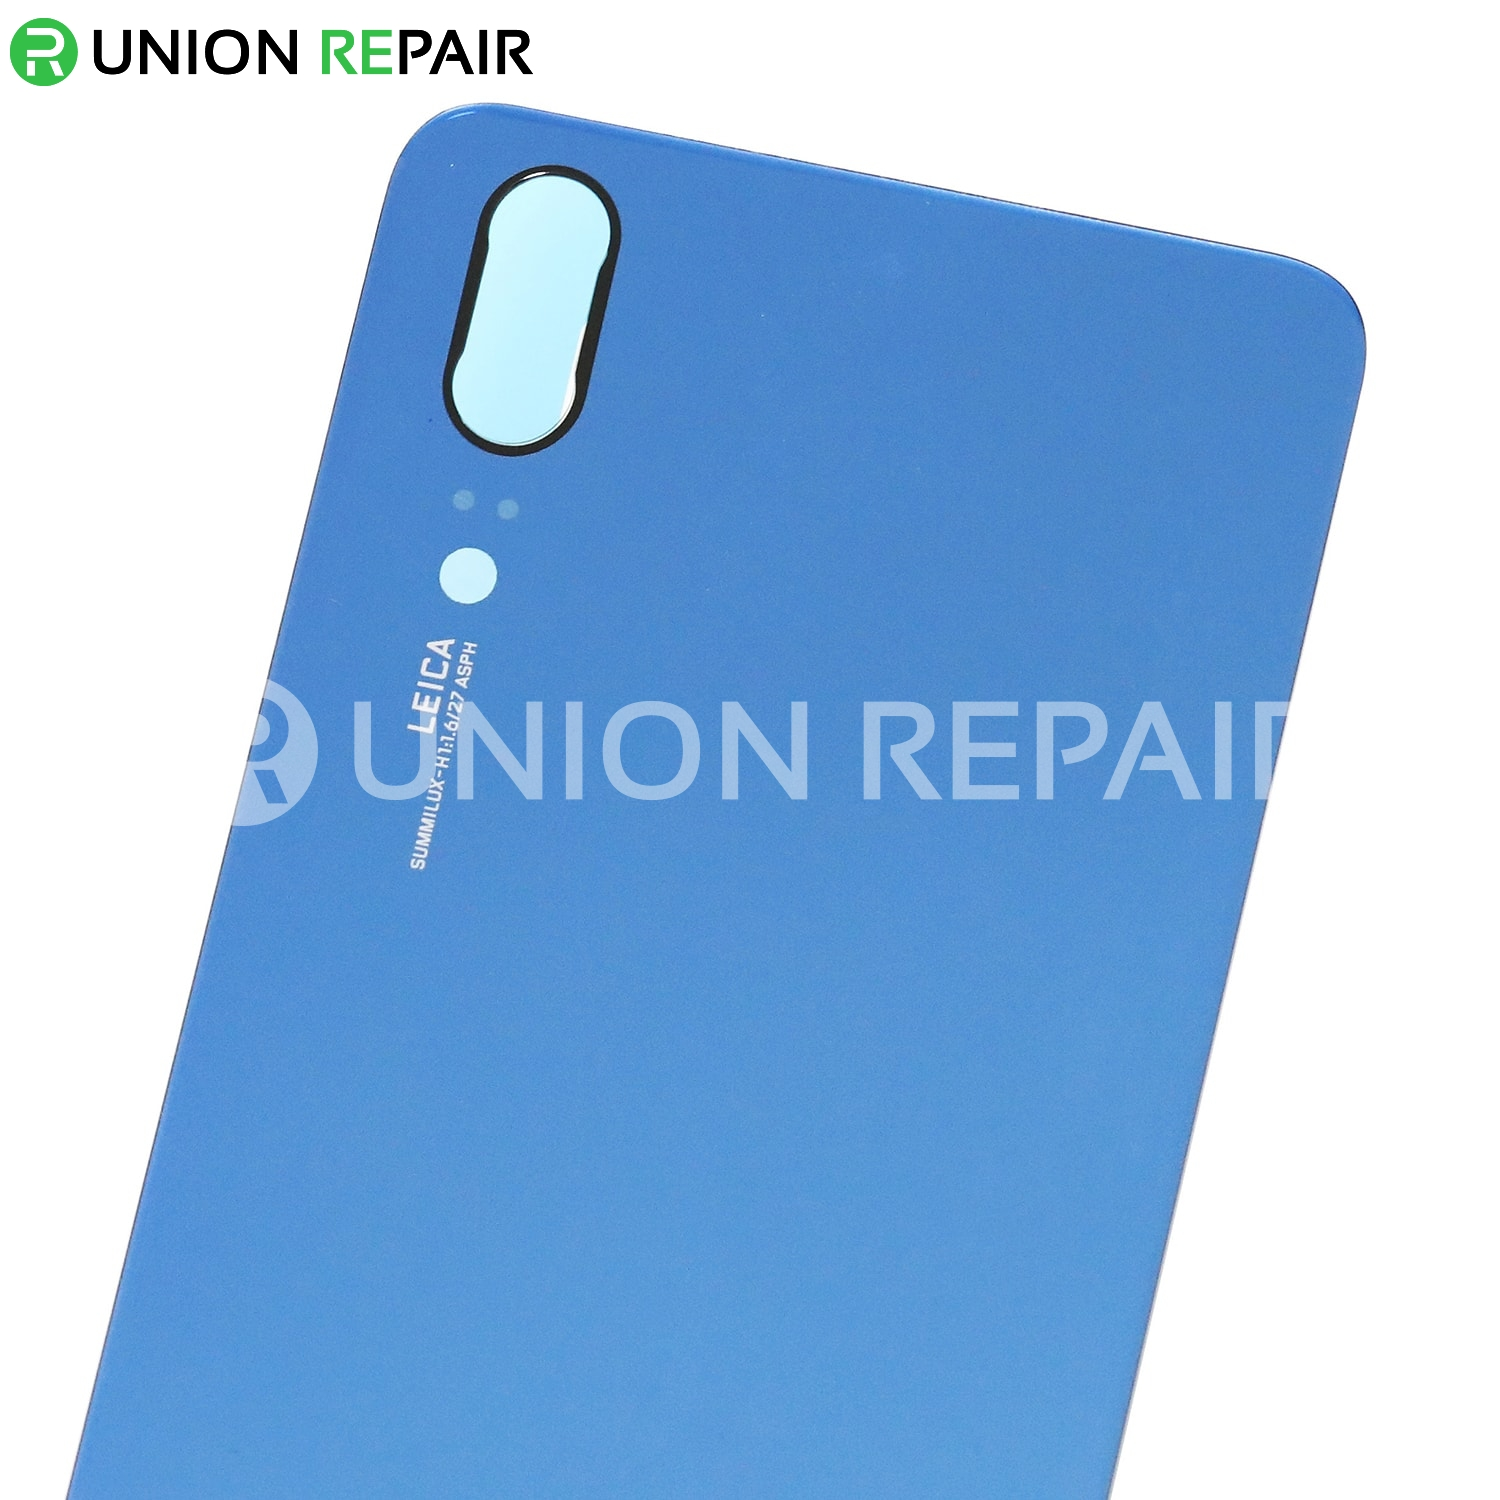 Replacement for Huawei P20 Battery Door - Midnight Blue